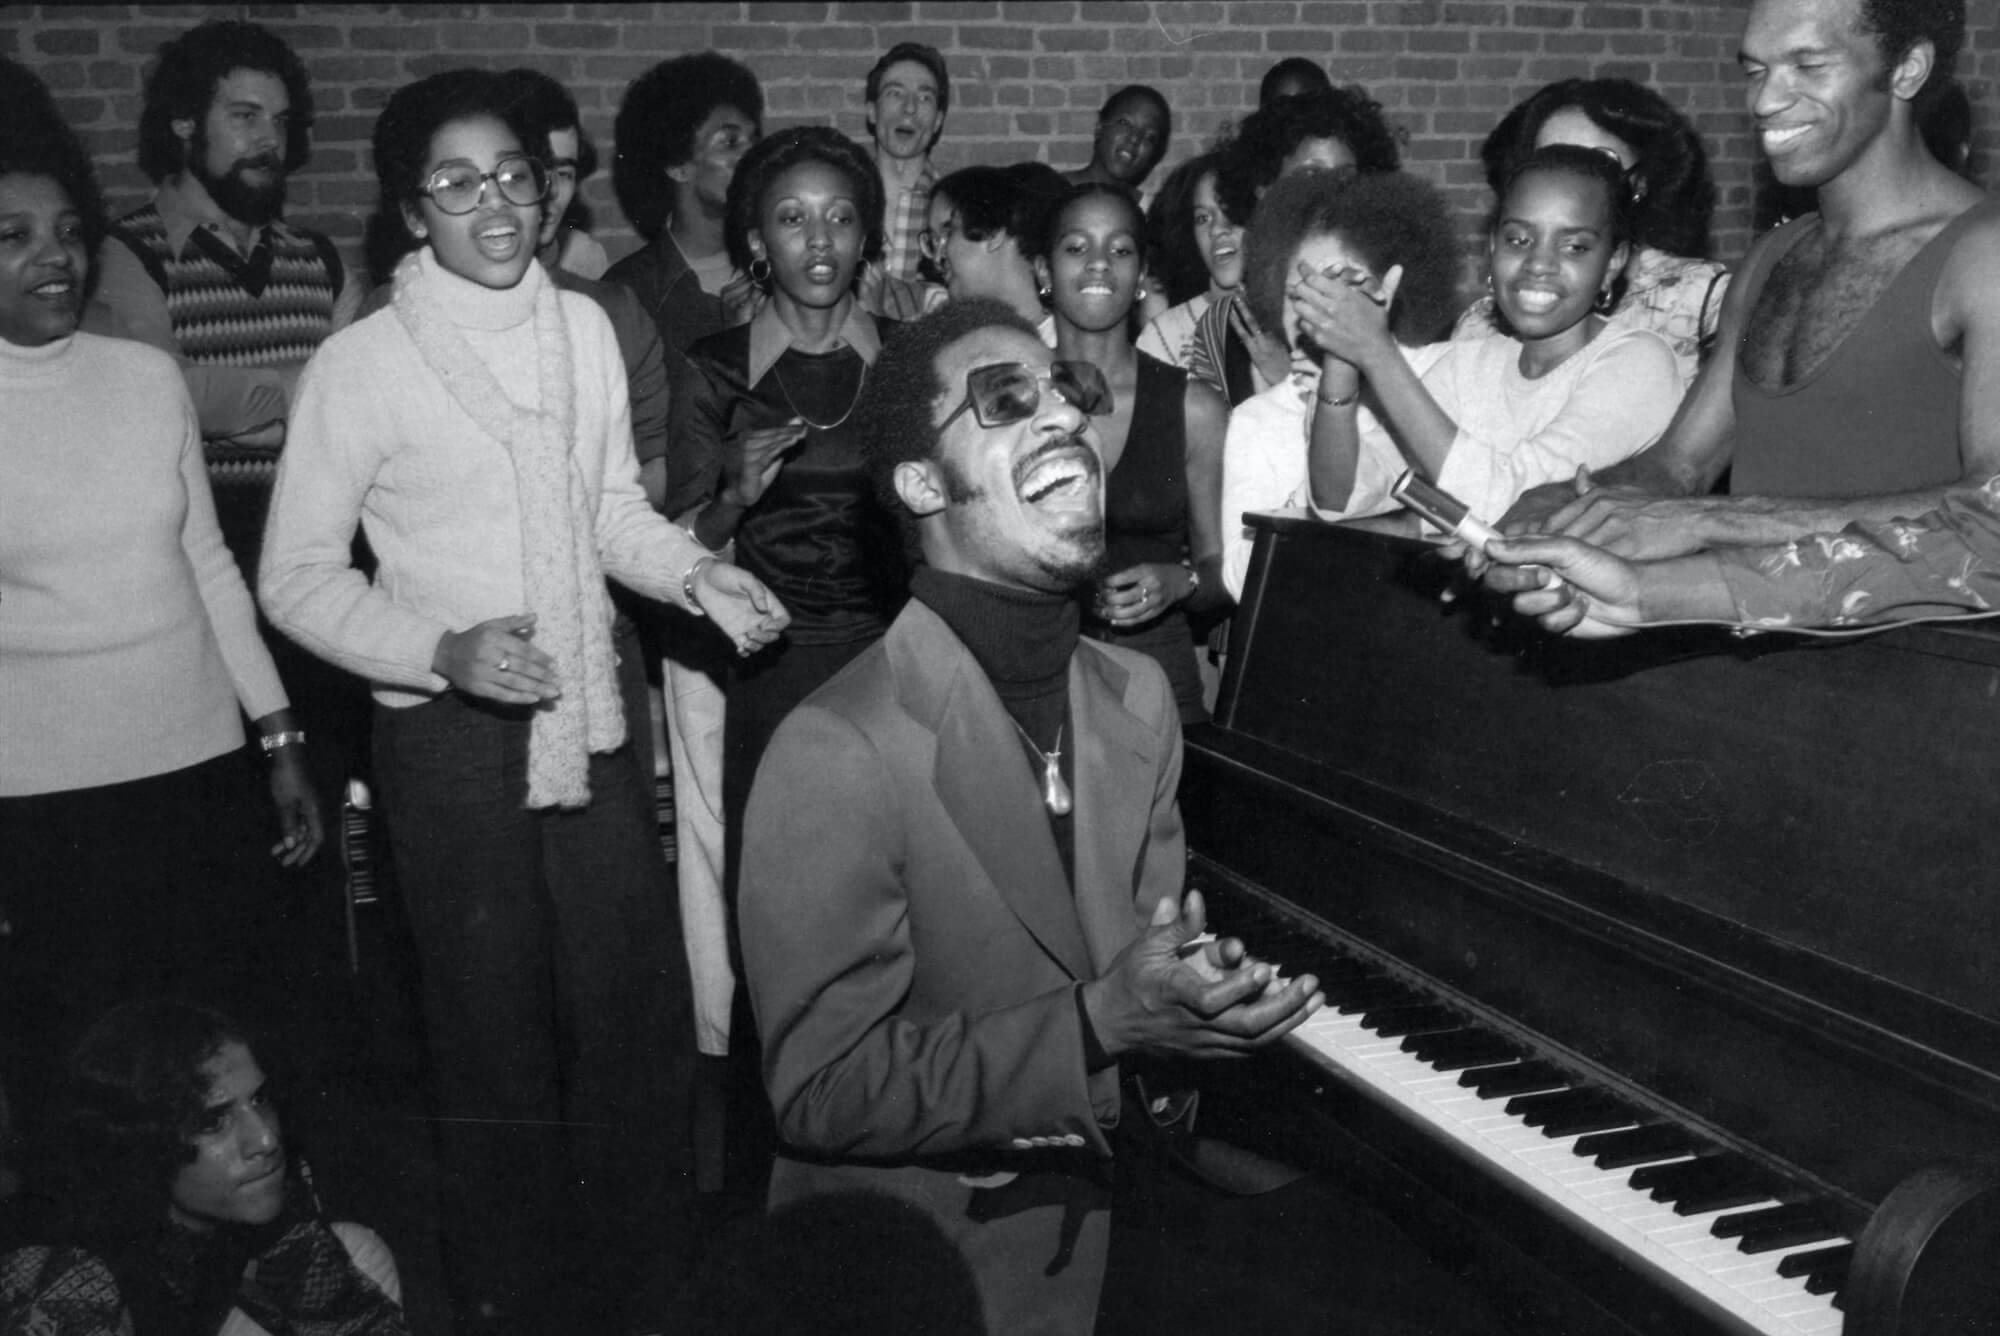 Stevie Wonder at the Dance Theatre of Harlem, 1976